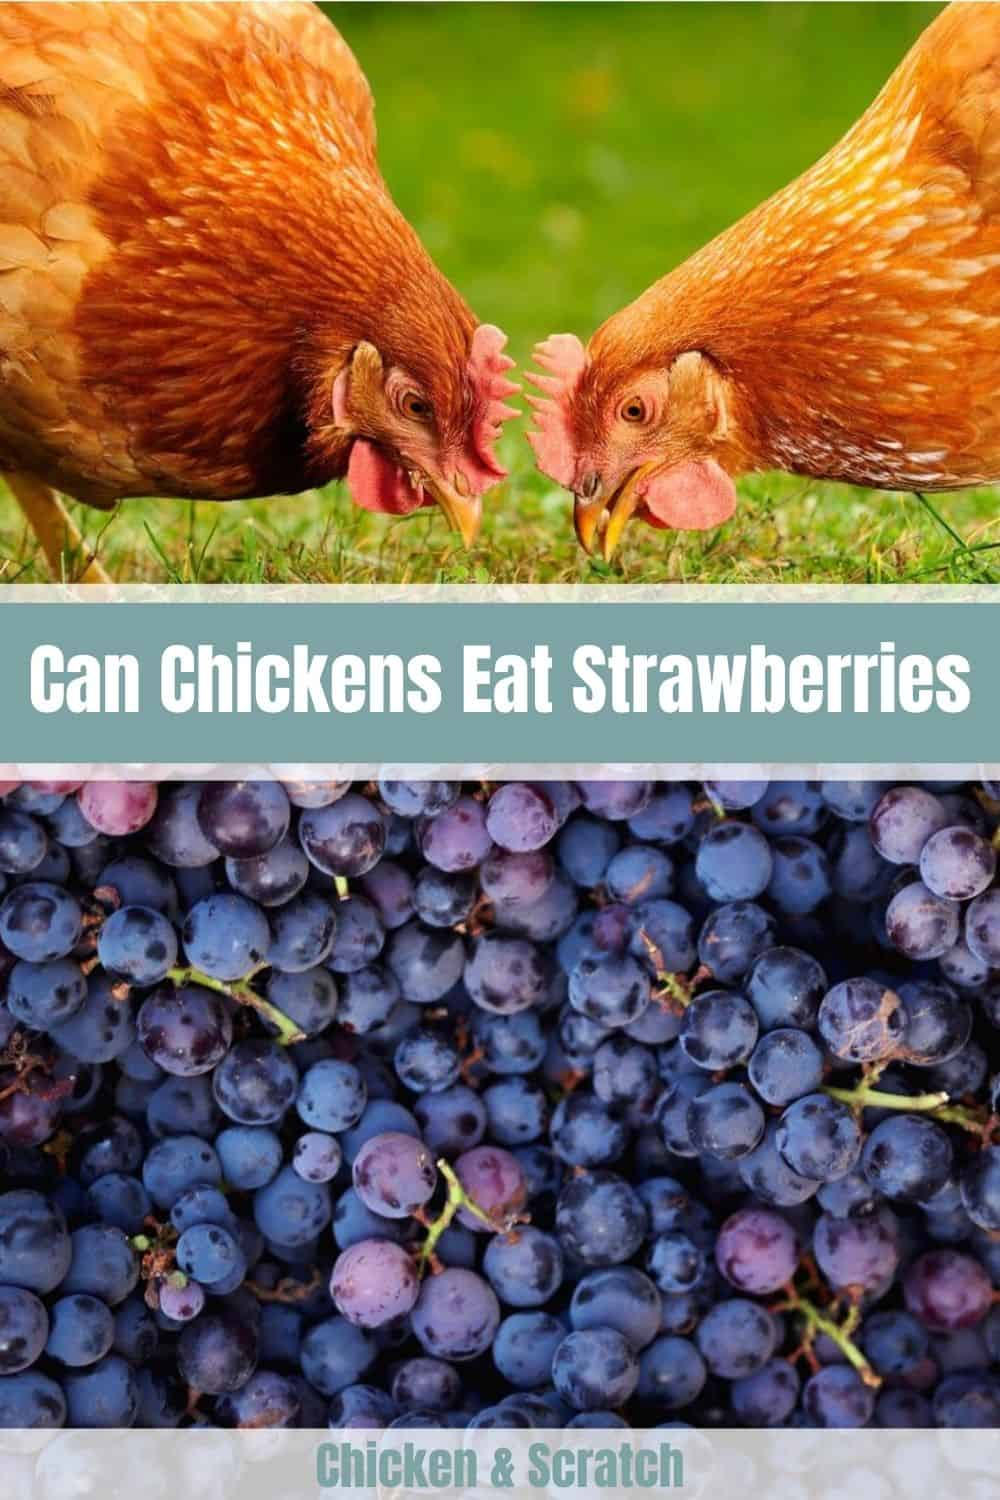 chickens eat grapes